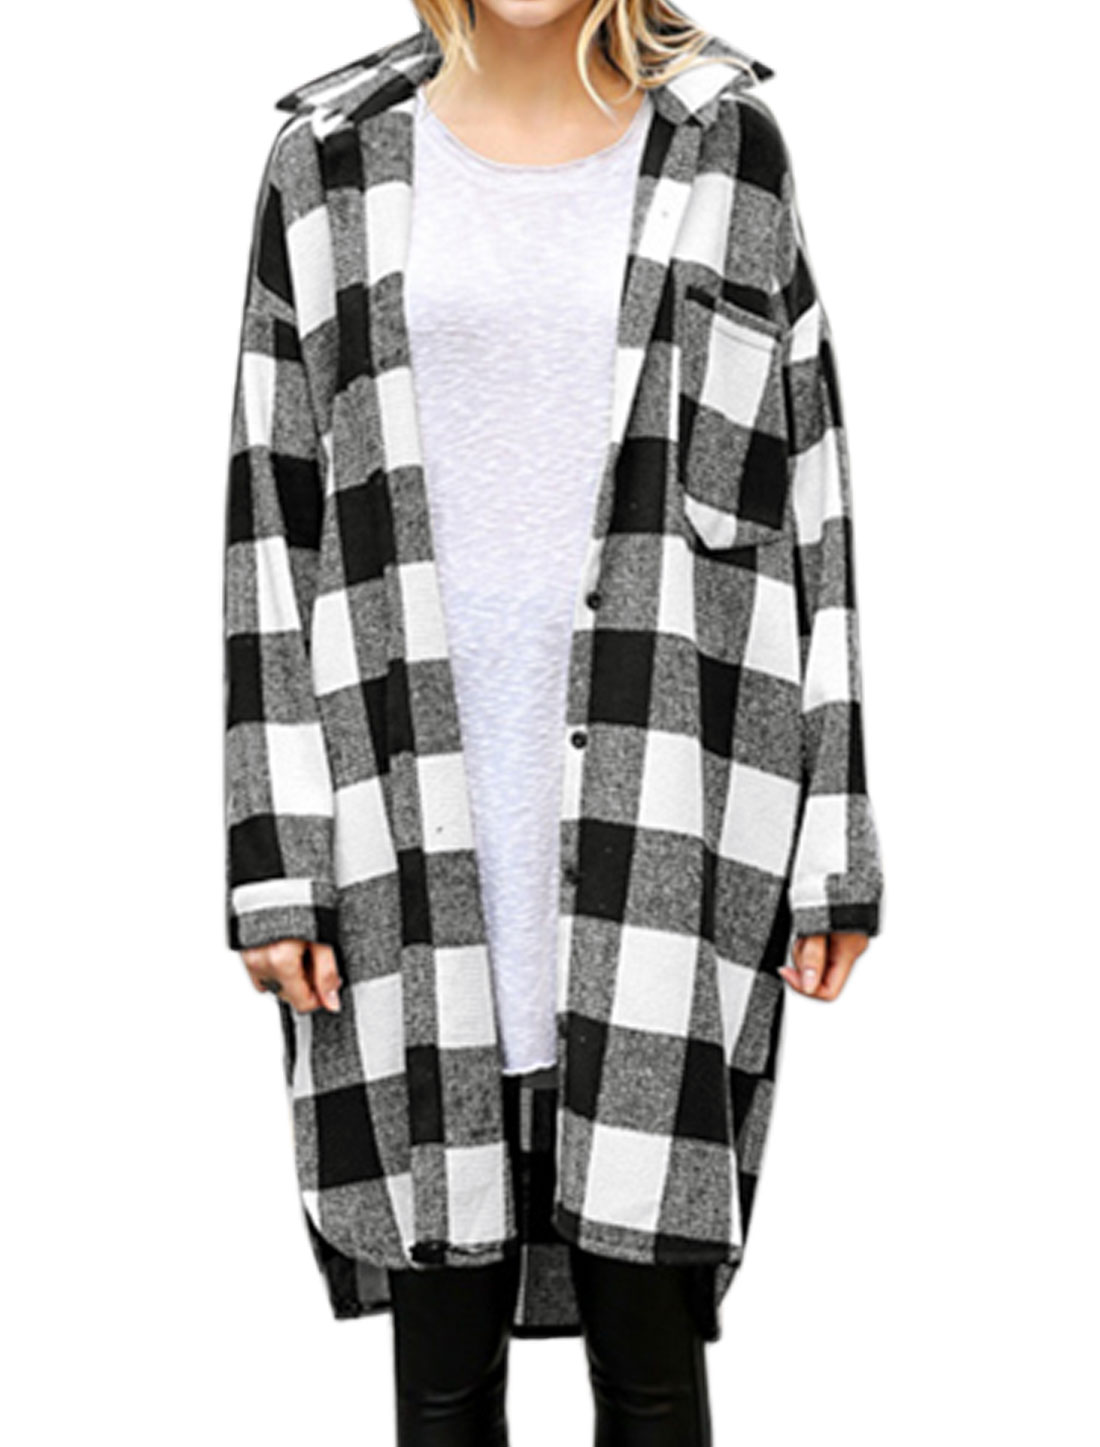 Women Long Sleeves Button Closure High Low Hem Plaids Tunic Shirt Black White M